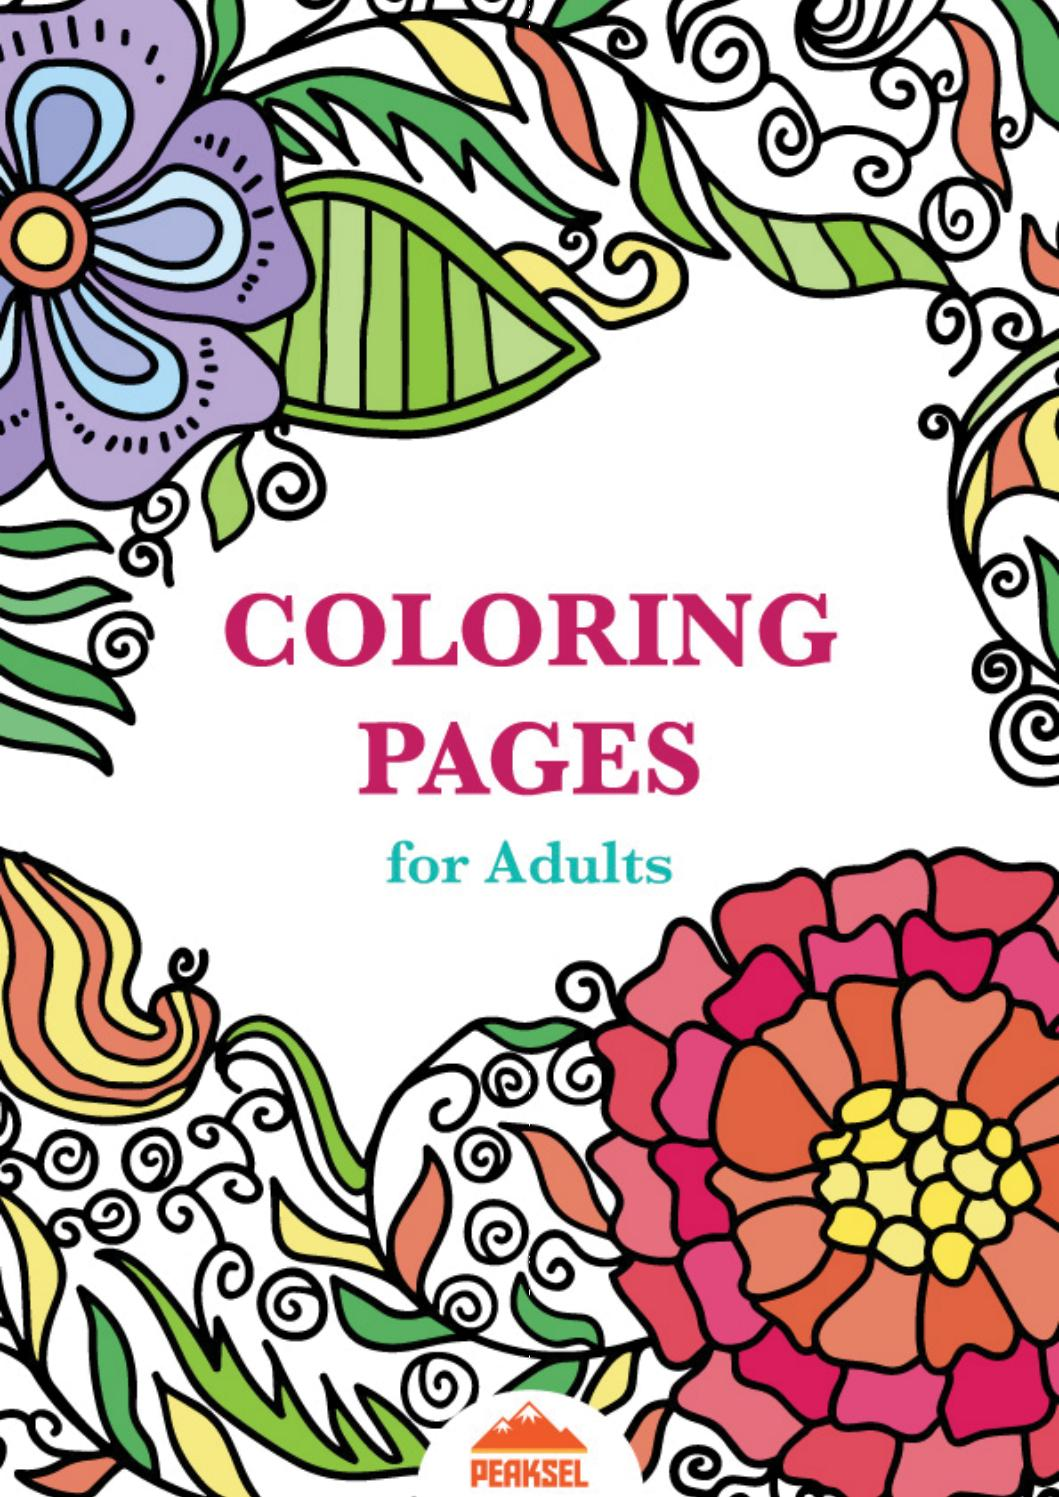 Coloring Pages for Adults - Free Adult Coloring Book by ... | free printable colouring pages for adults